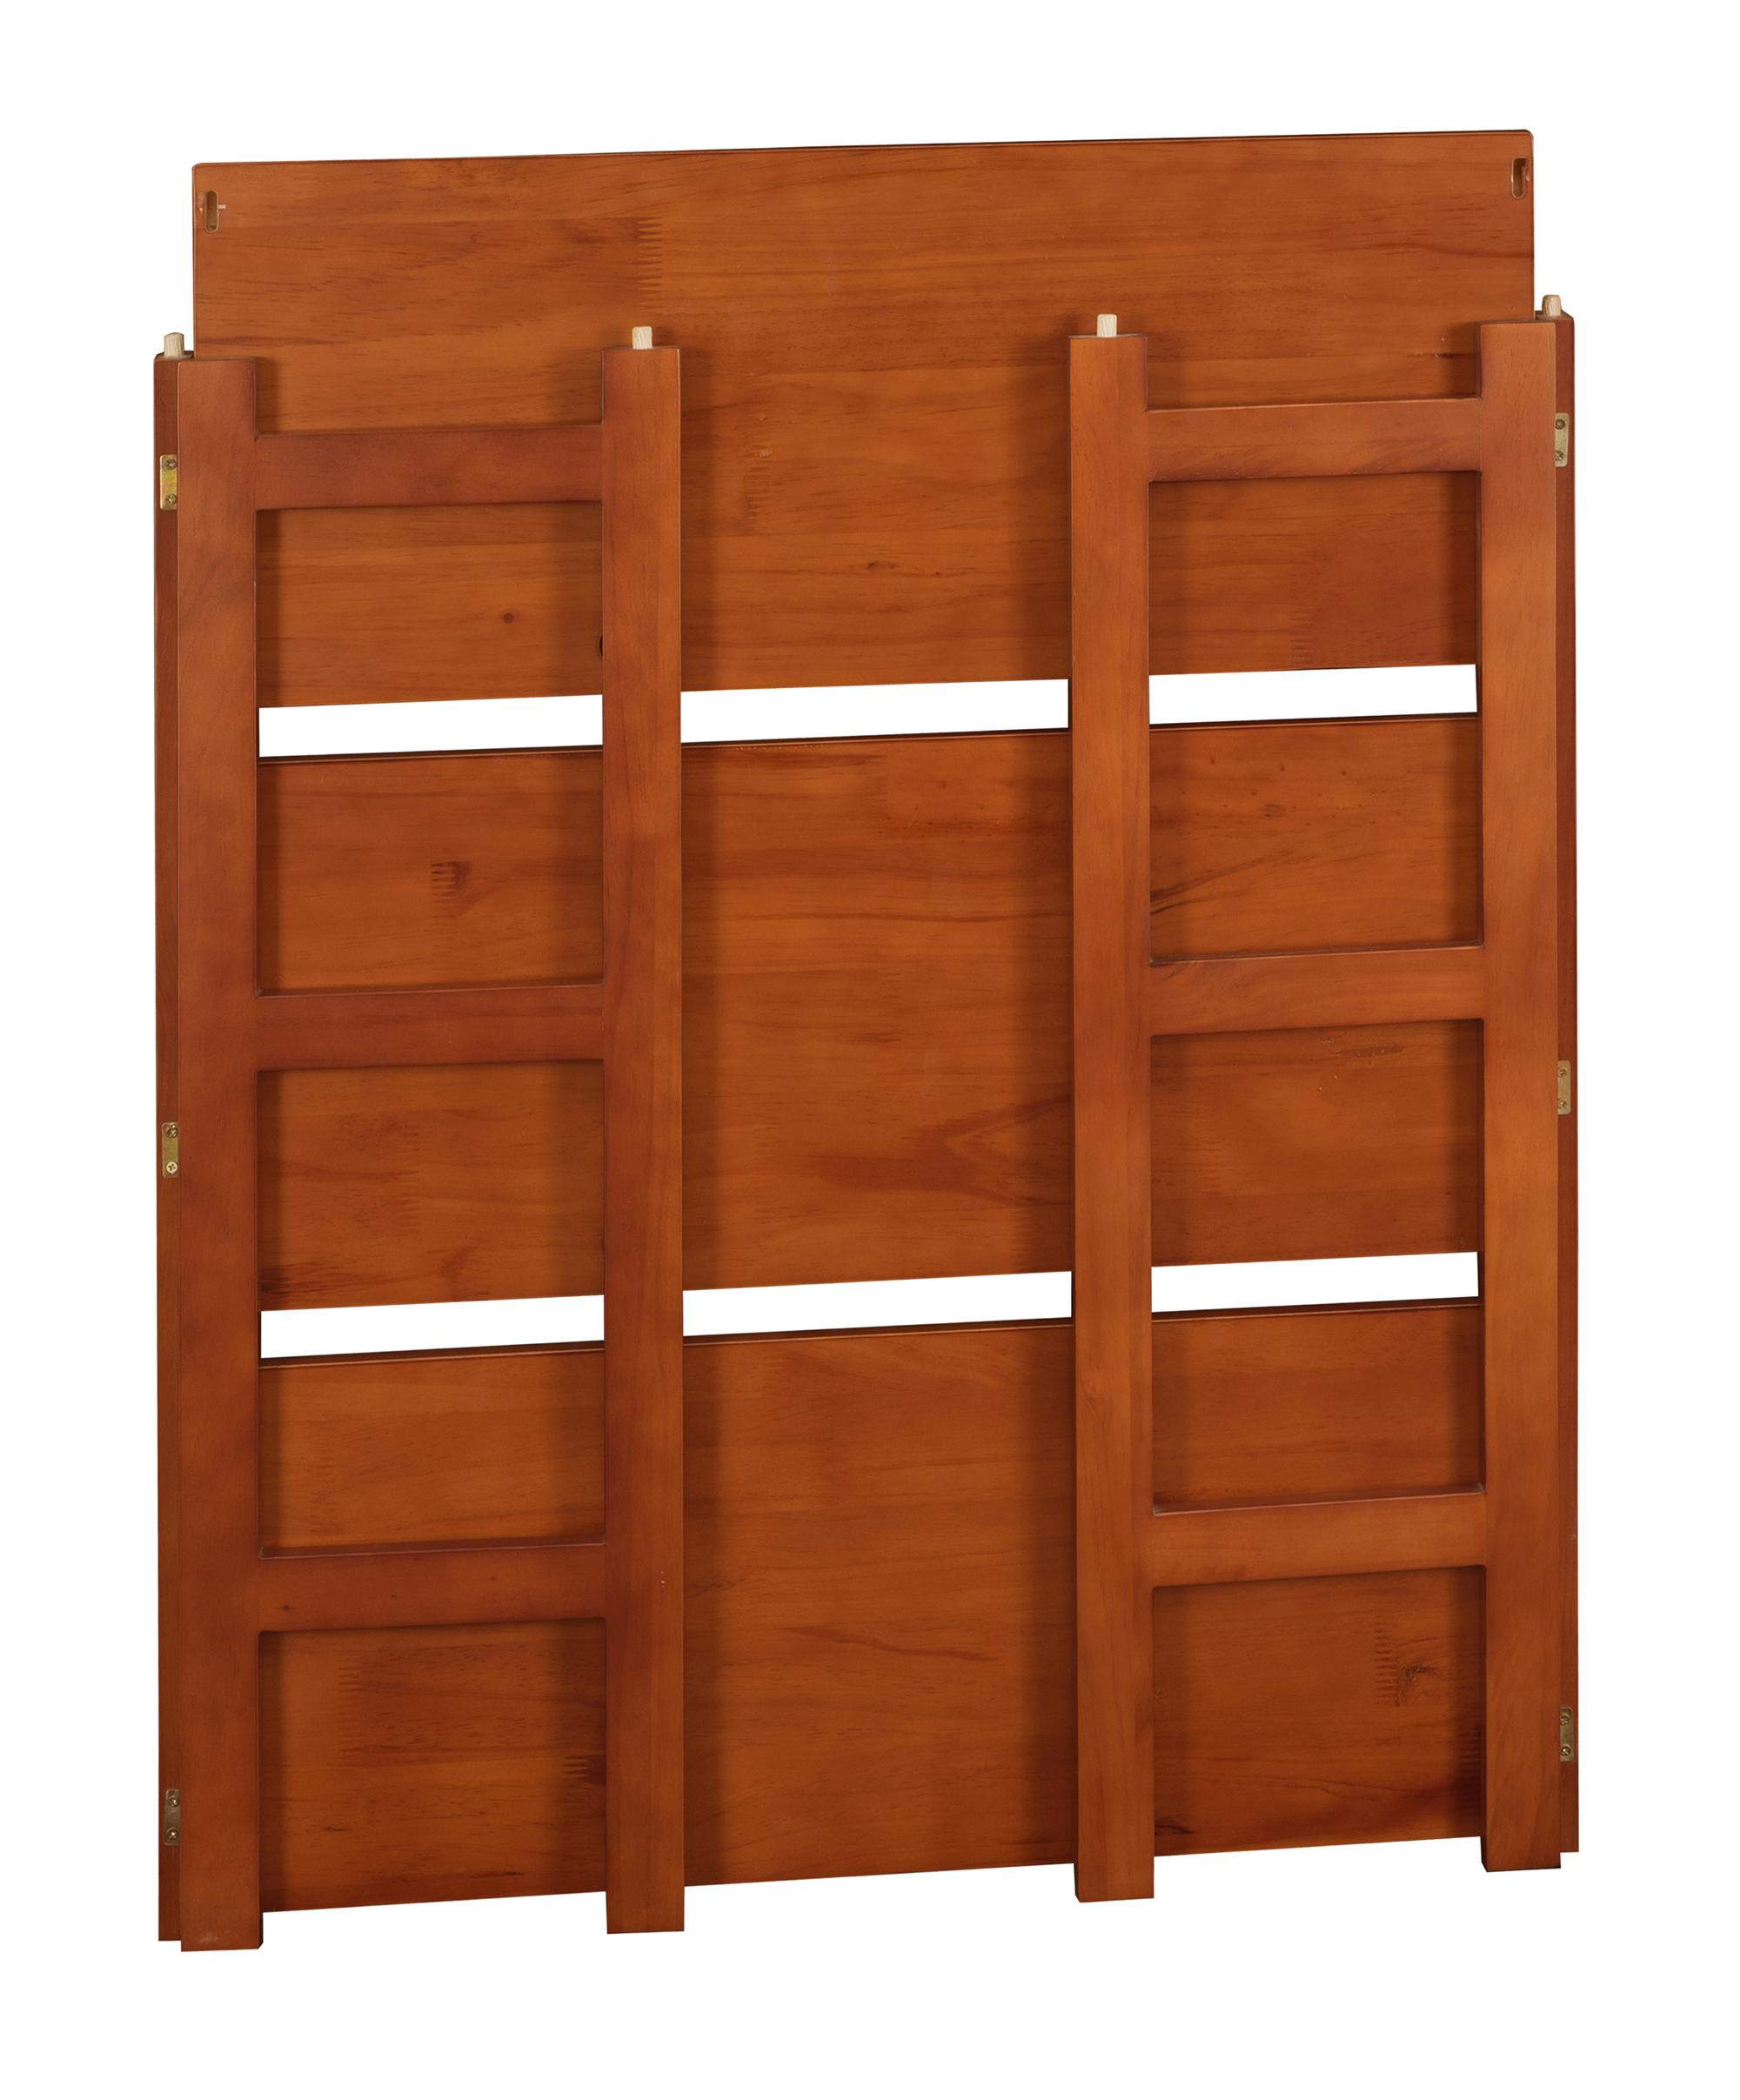 Regency flip flop 34 high folding bookcase Folding bookshelf